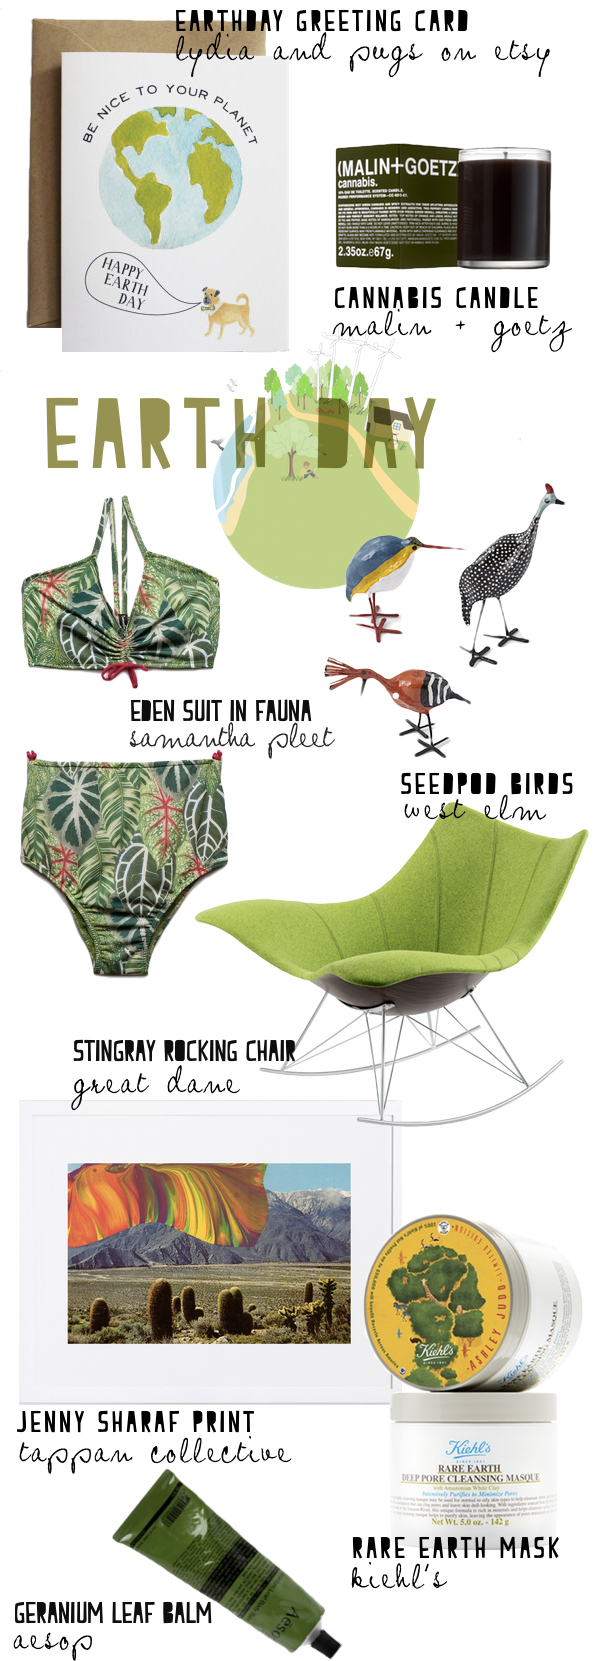 Earth Day 2014 from The Walkup featuring Aesop, West Elm, Great Dane and more!